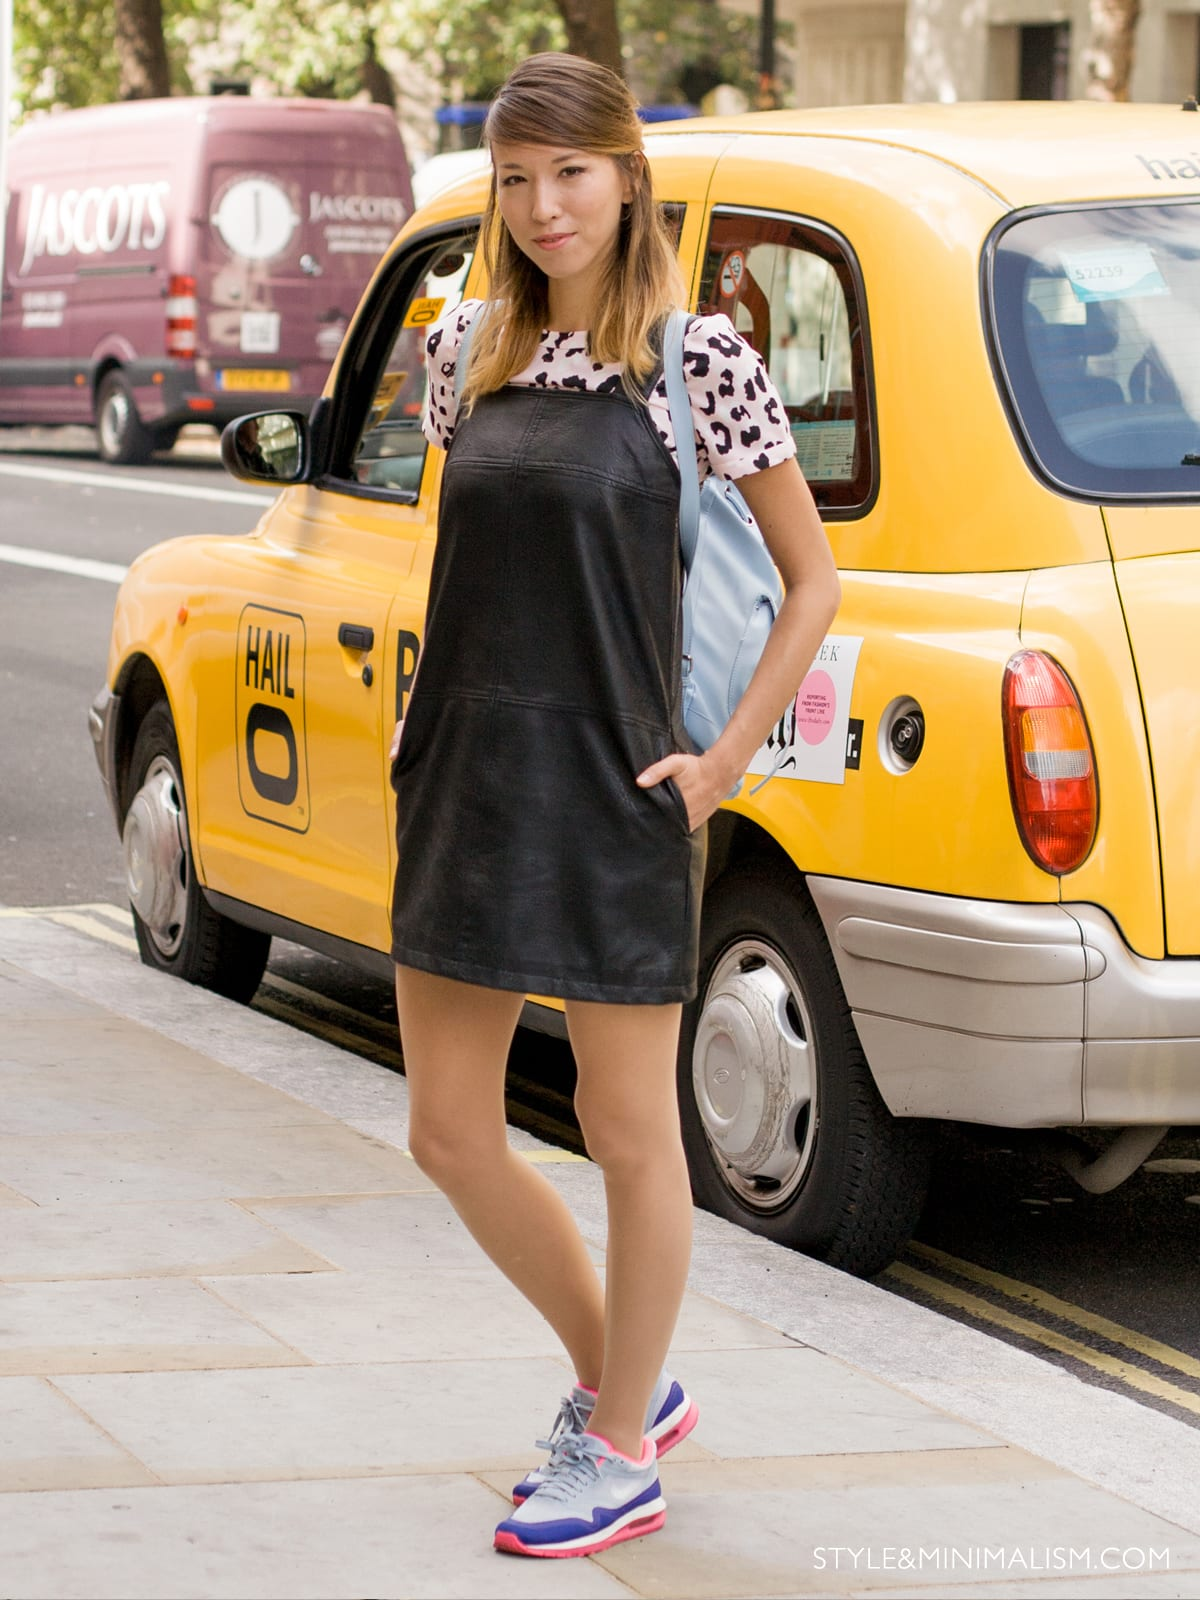 StyleANDMinimalism   LFW SS15   Street Style   Day 1   Natasha of Girl in the Lens